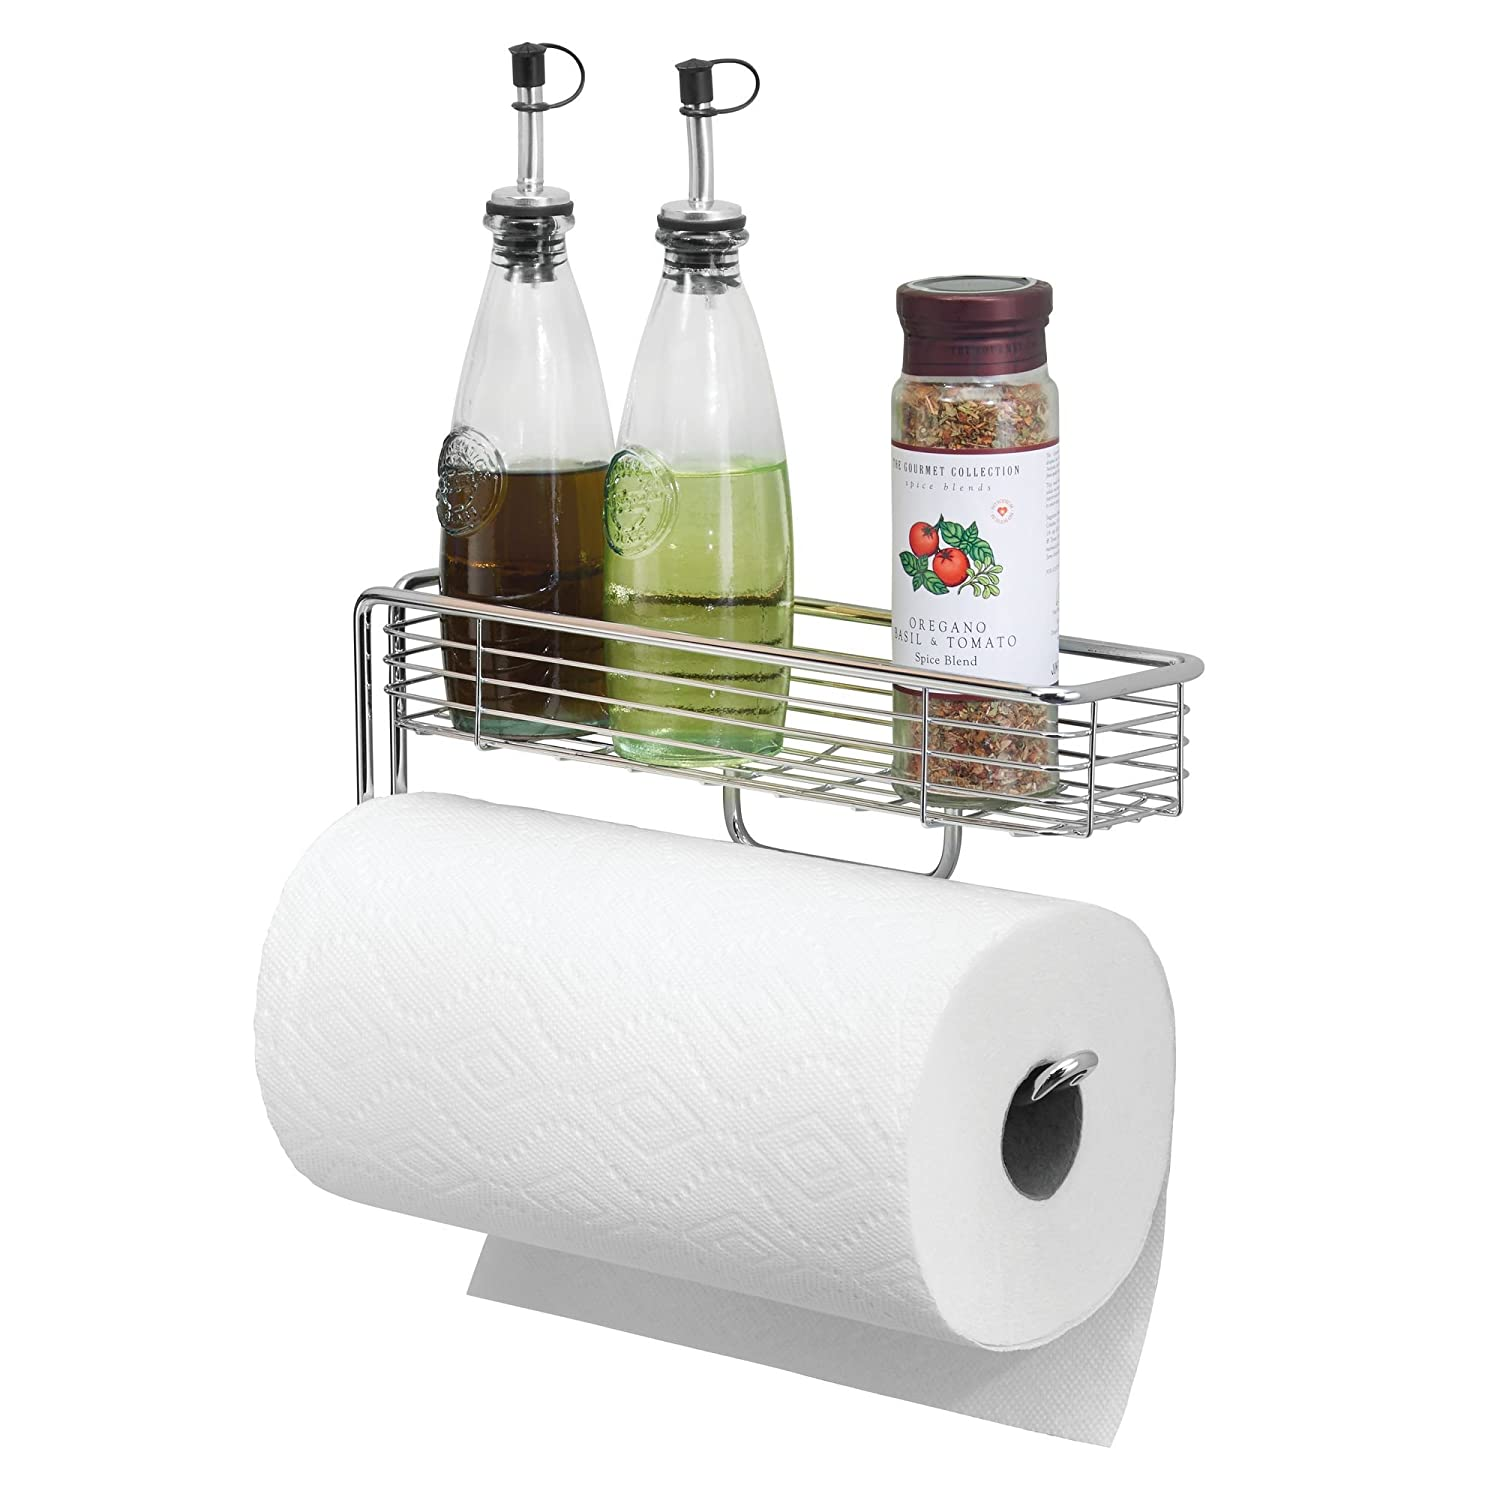 Amazoncom Mdesign Wall Mount Metal Paper Towel Holder With